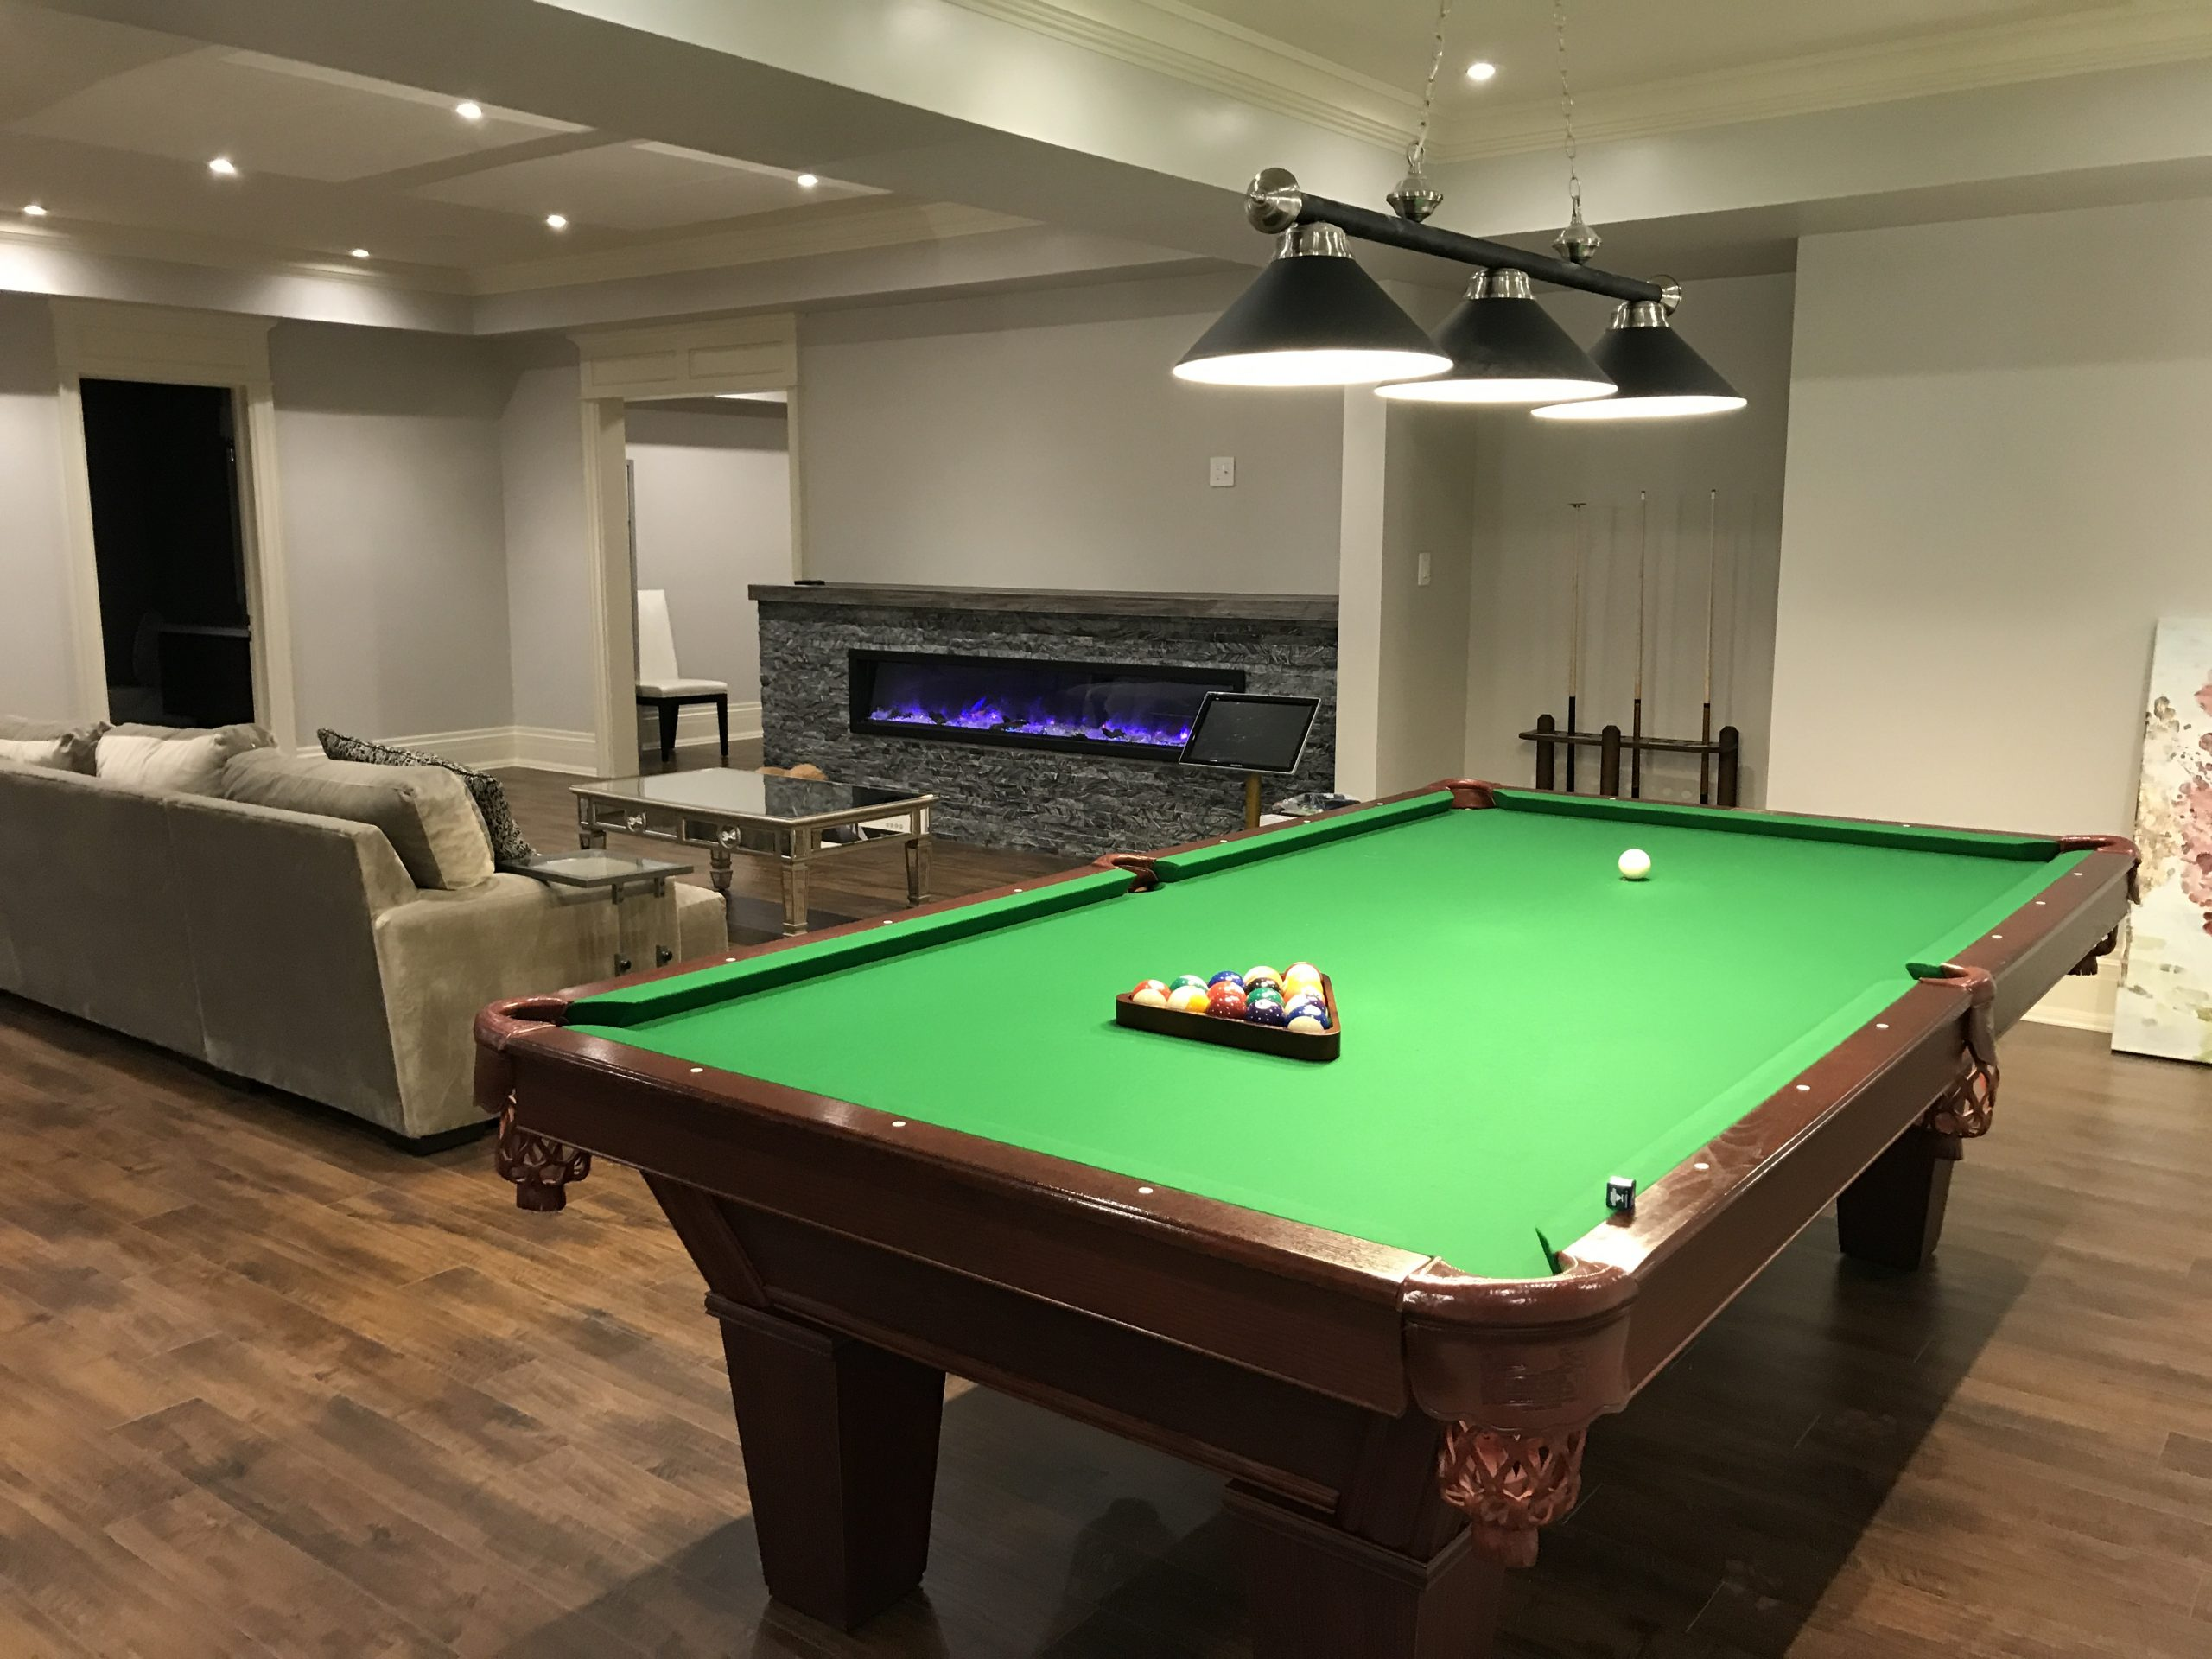 Basement renovation with entertainment area